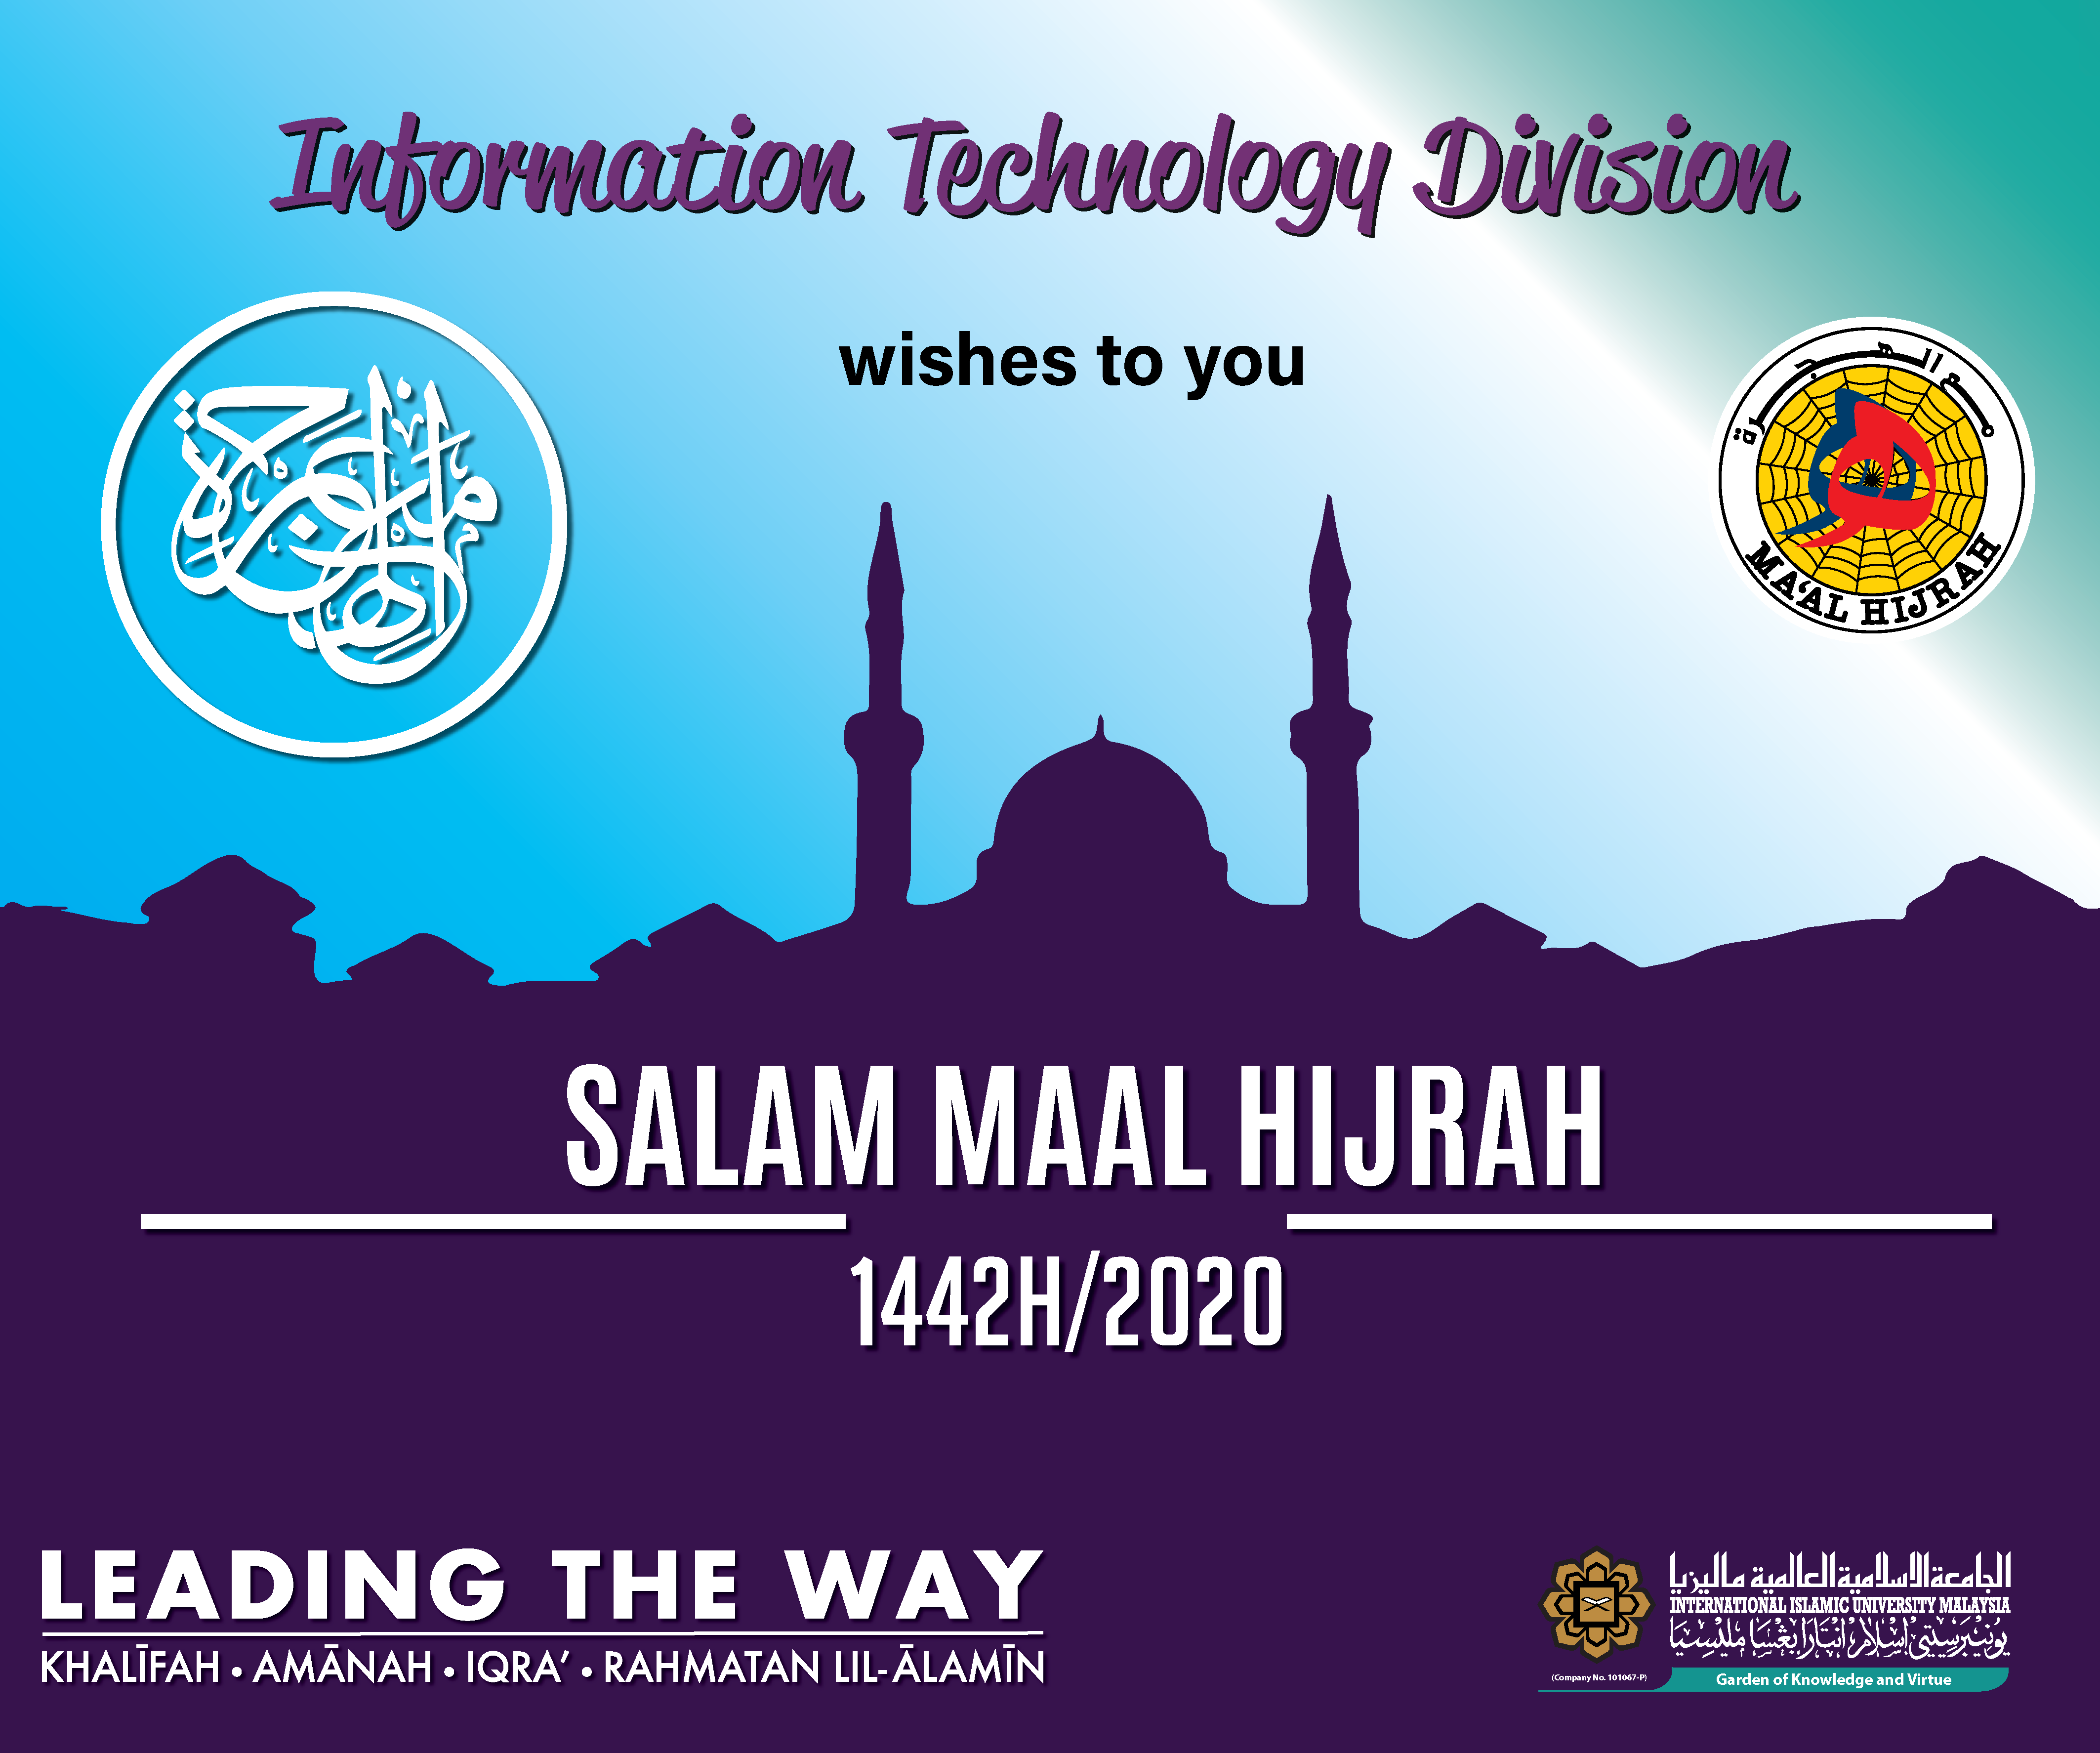 Salam Maal Hijrah 1442H from ITD